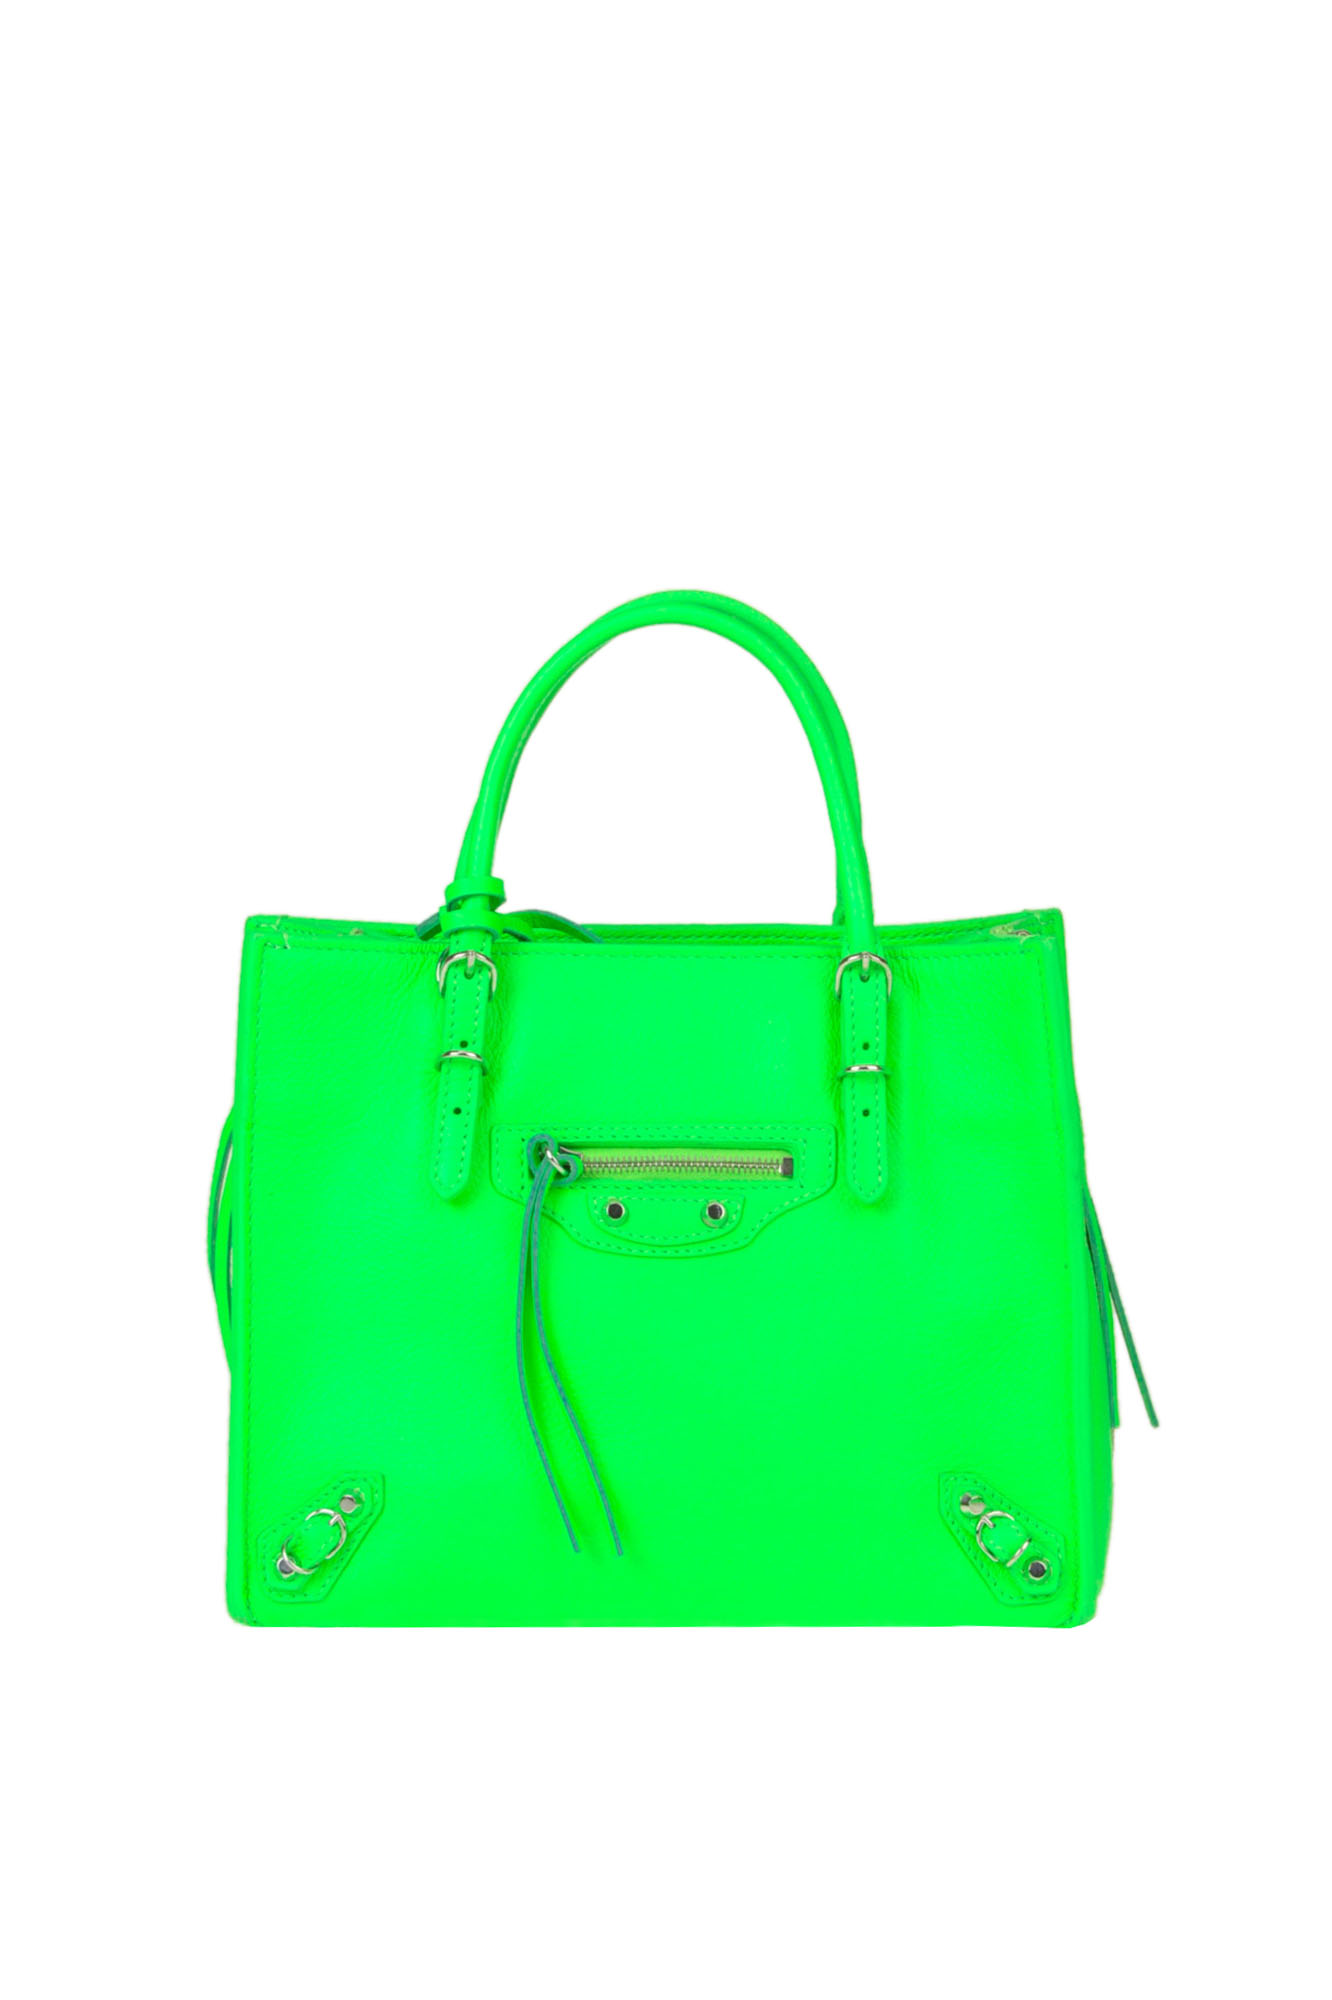 8ce49c08efe4 Balenciaga  Papier A4 Mini  Fluo Leather Bag In Light Green